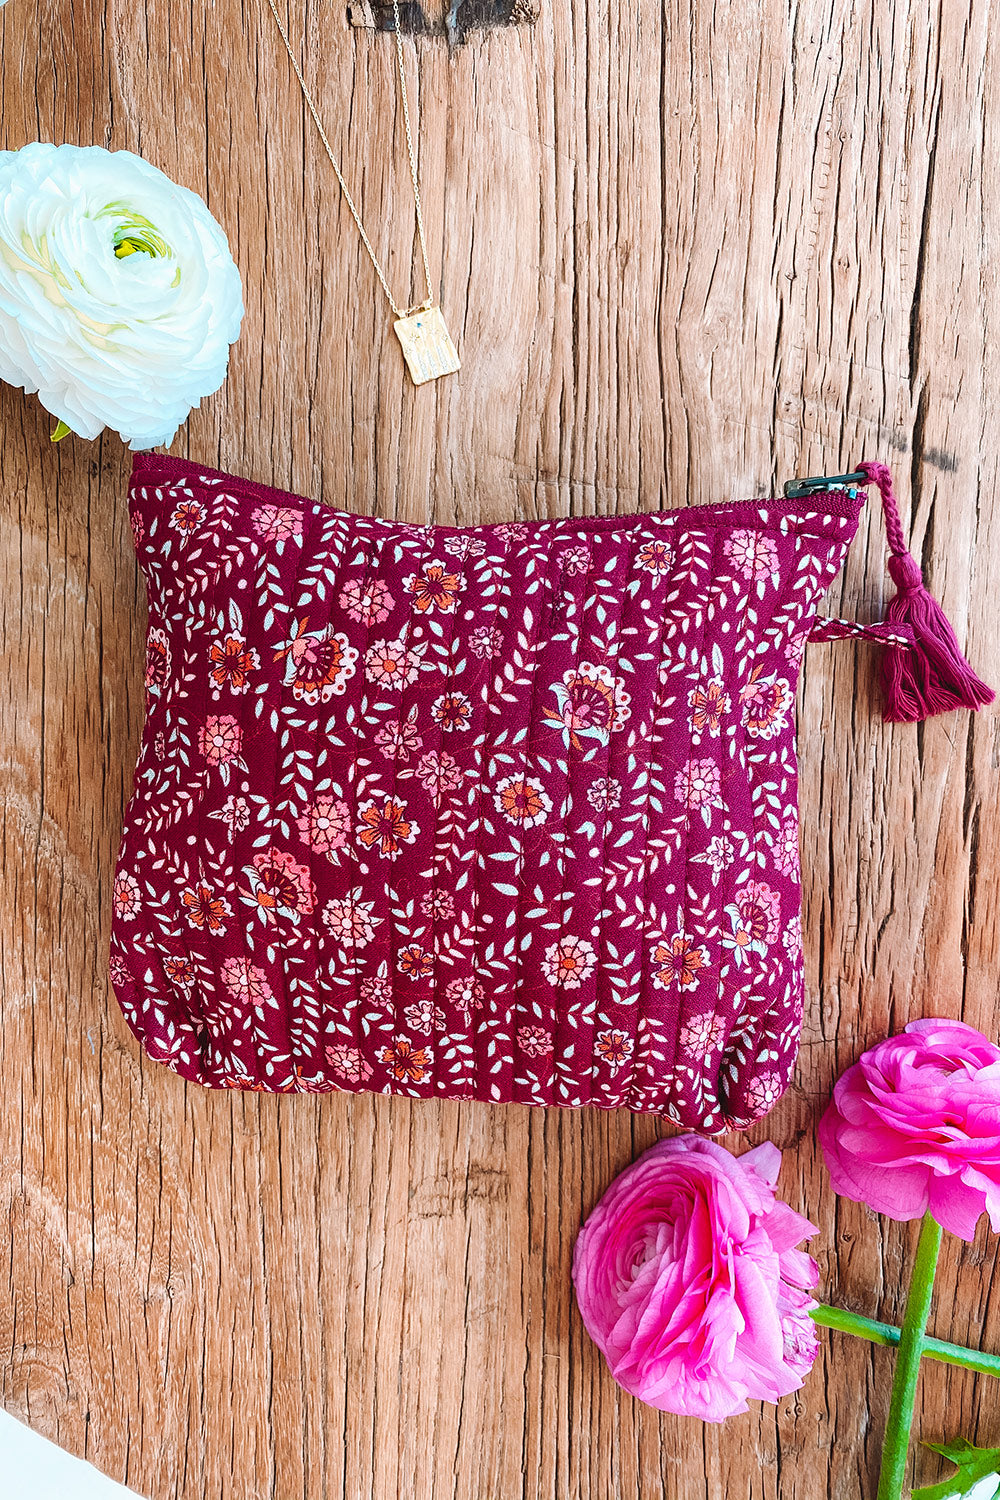 Fleetwood Revive Pouch in Floral Purple